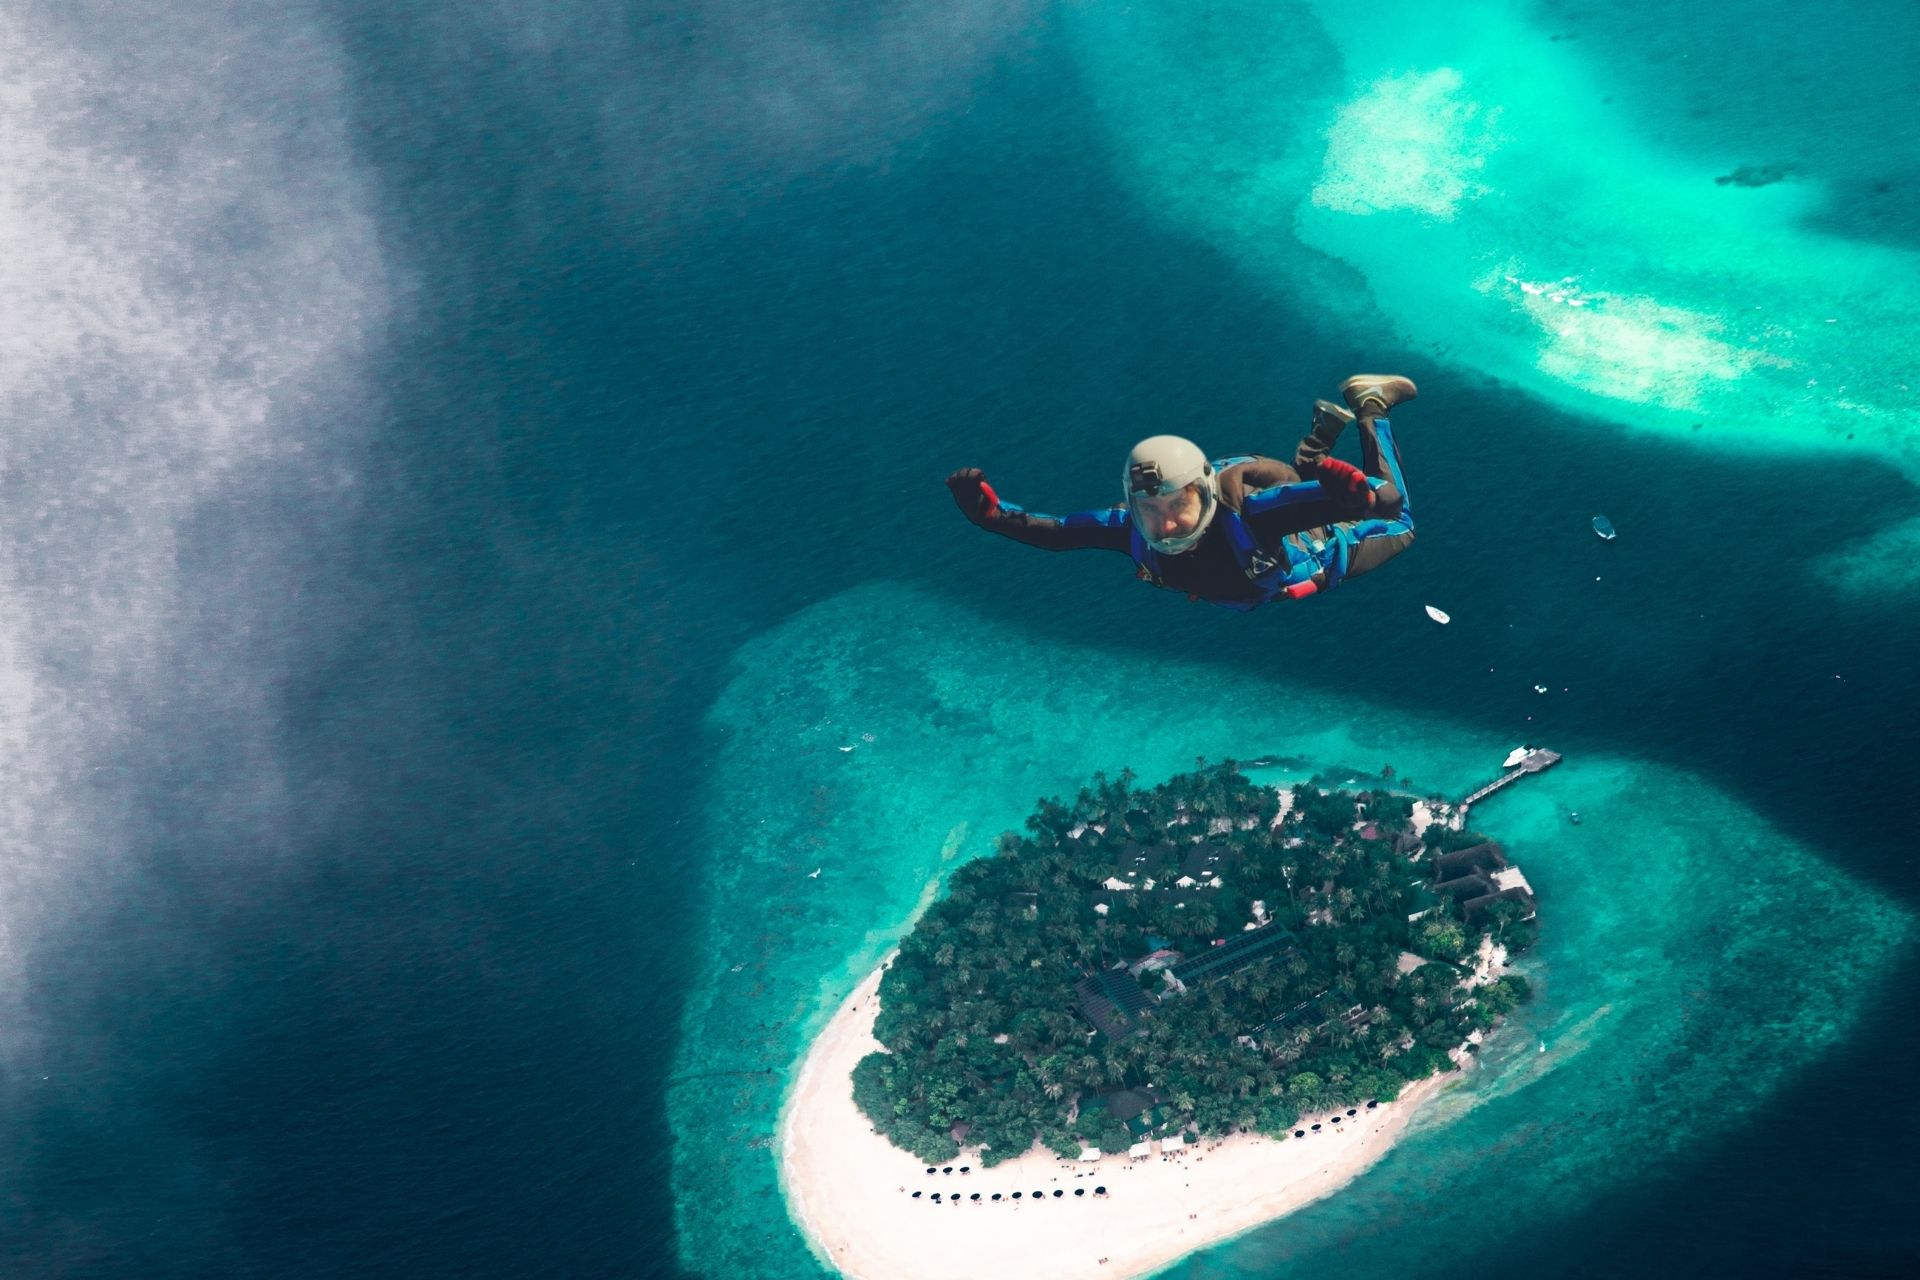 Skydiving in Maldives